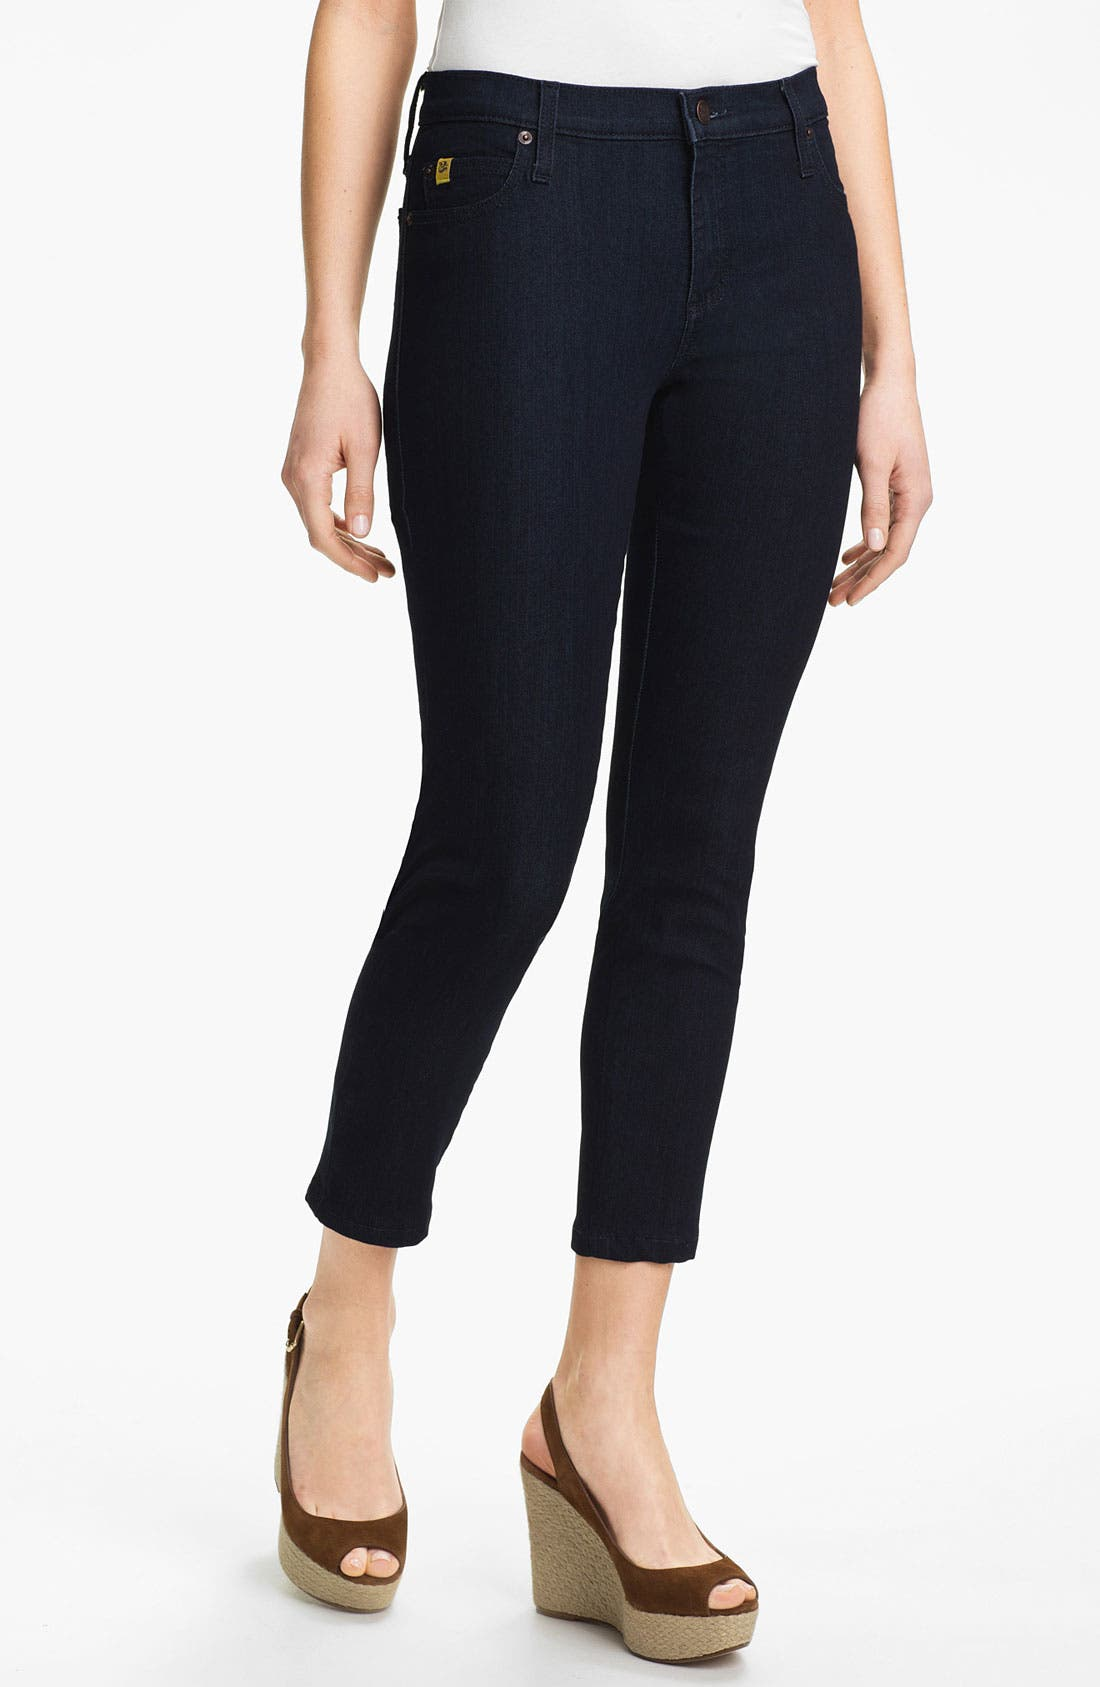 Alternate Image 1 Selected - Second Yoga Jeans Ankle Jeans